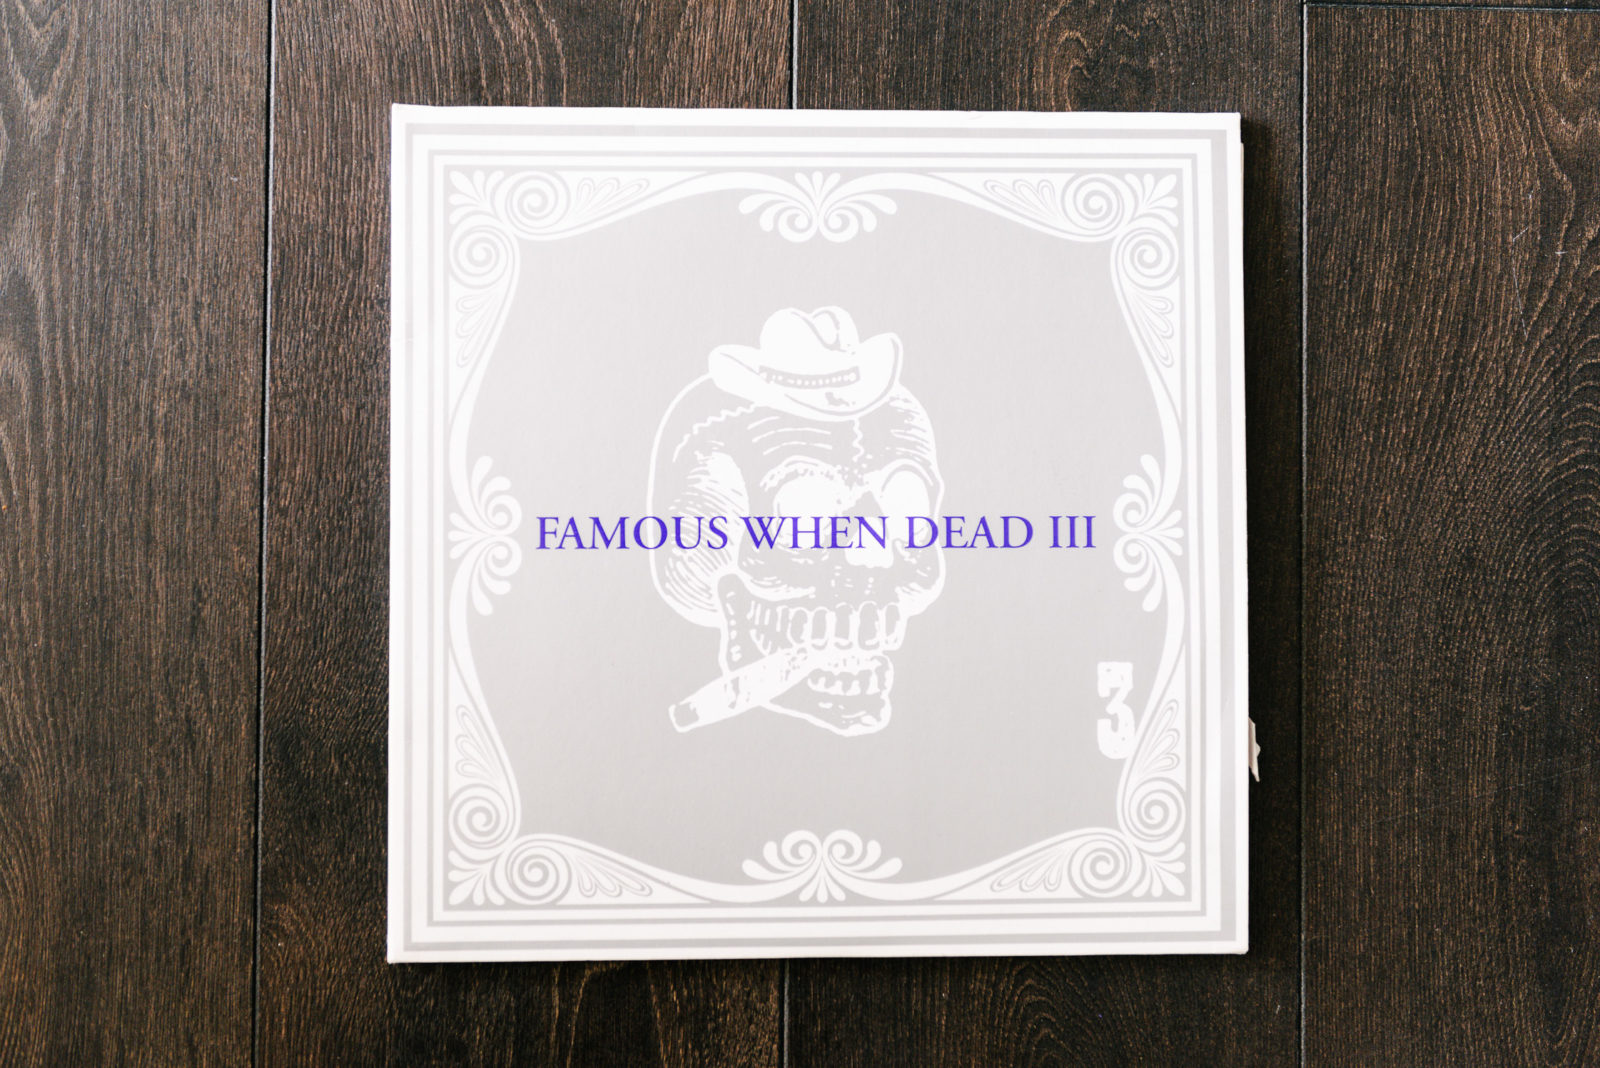 Famous When Dead III (Compilation by Playhouse)